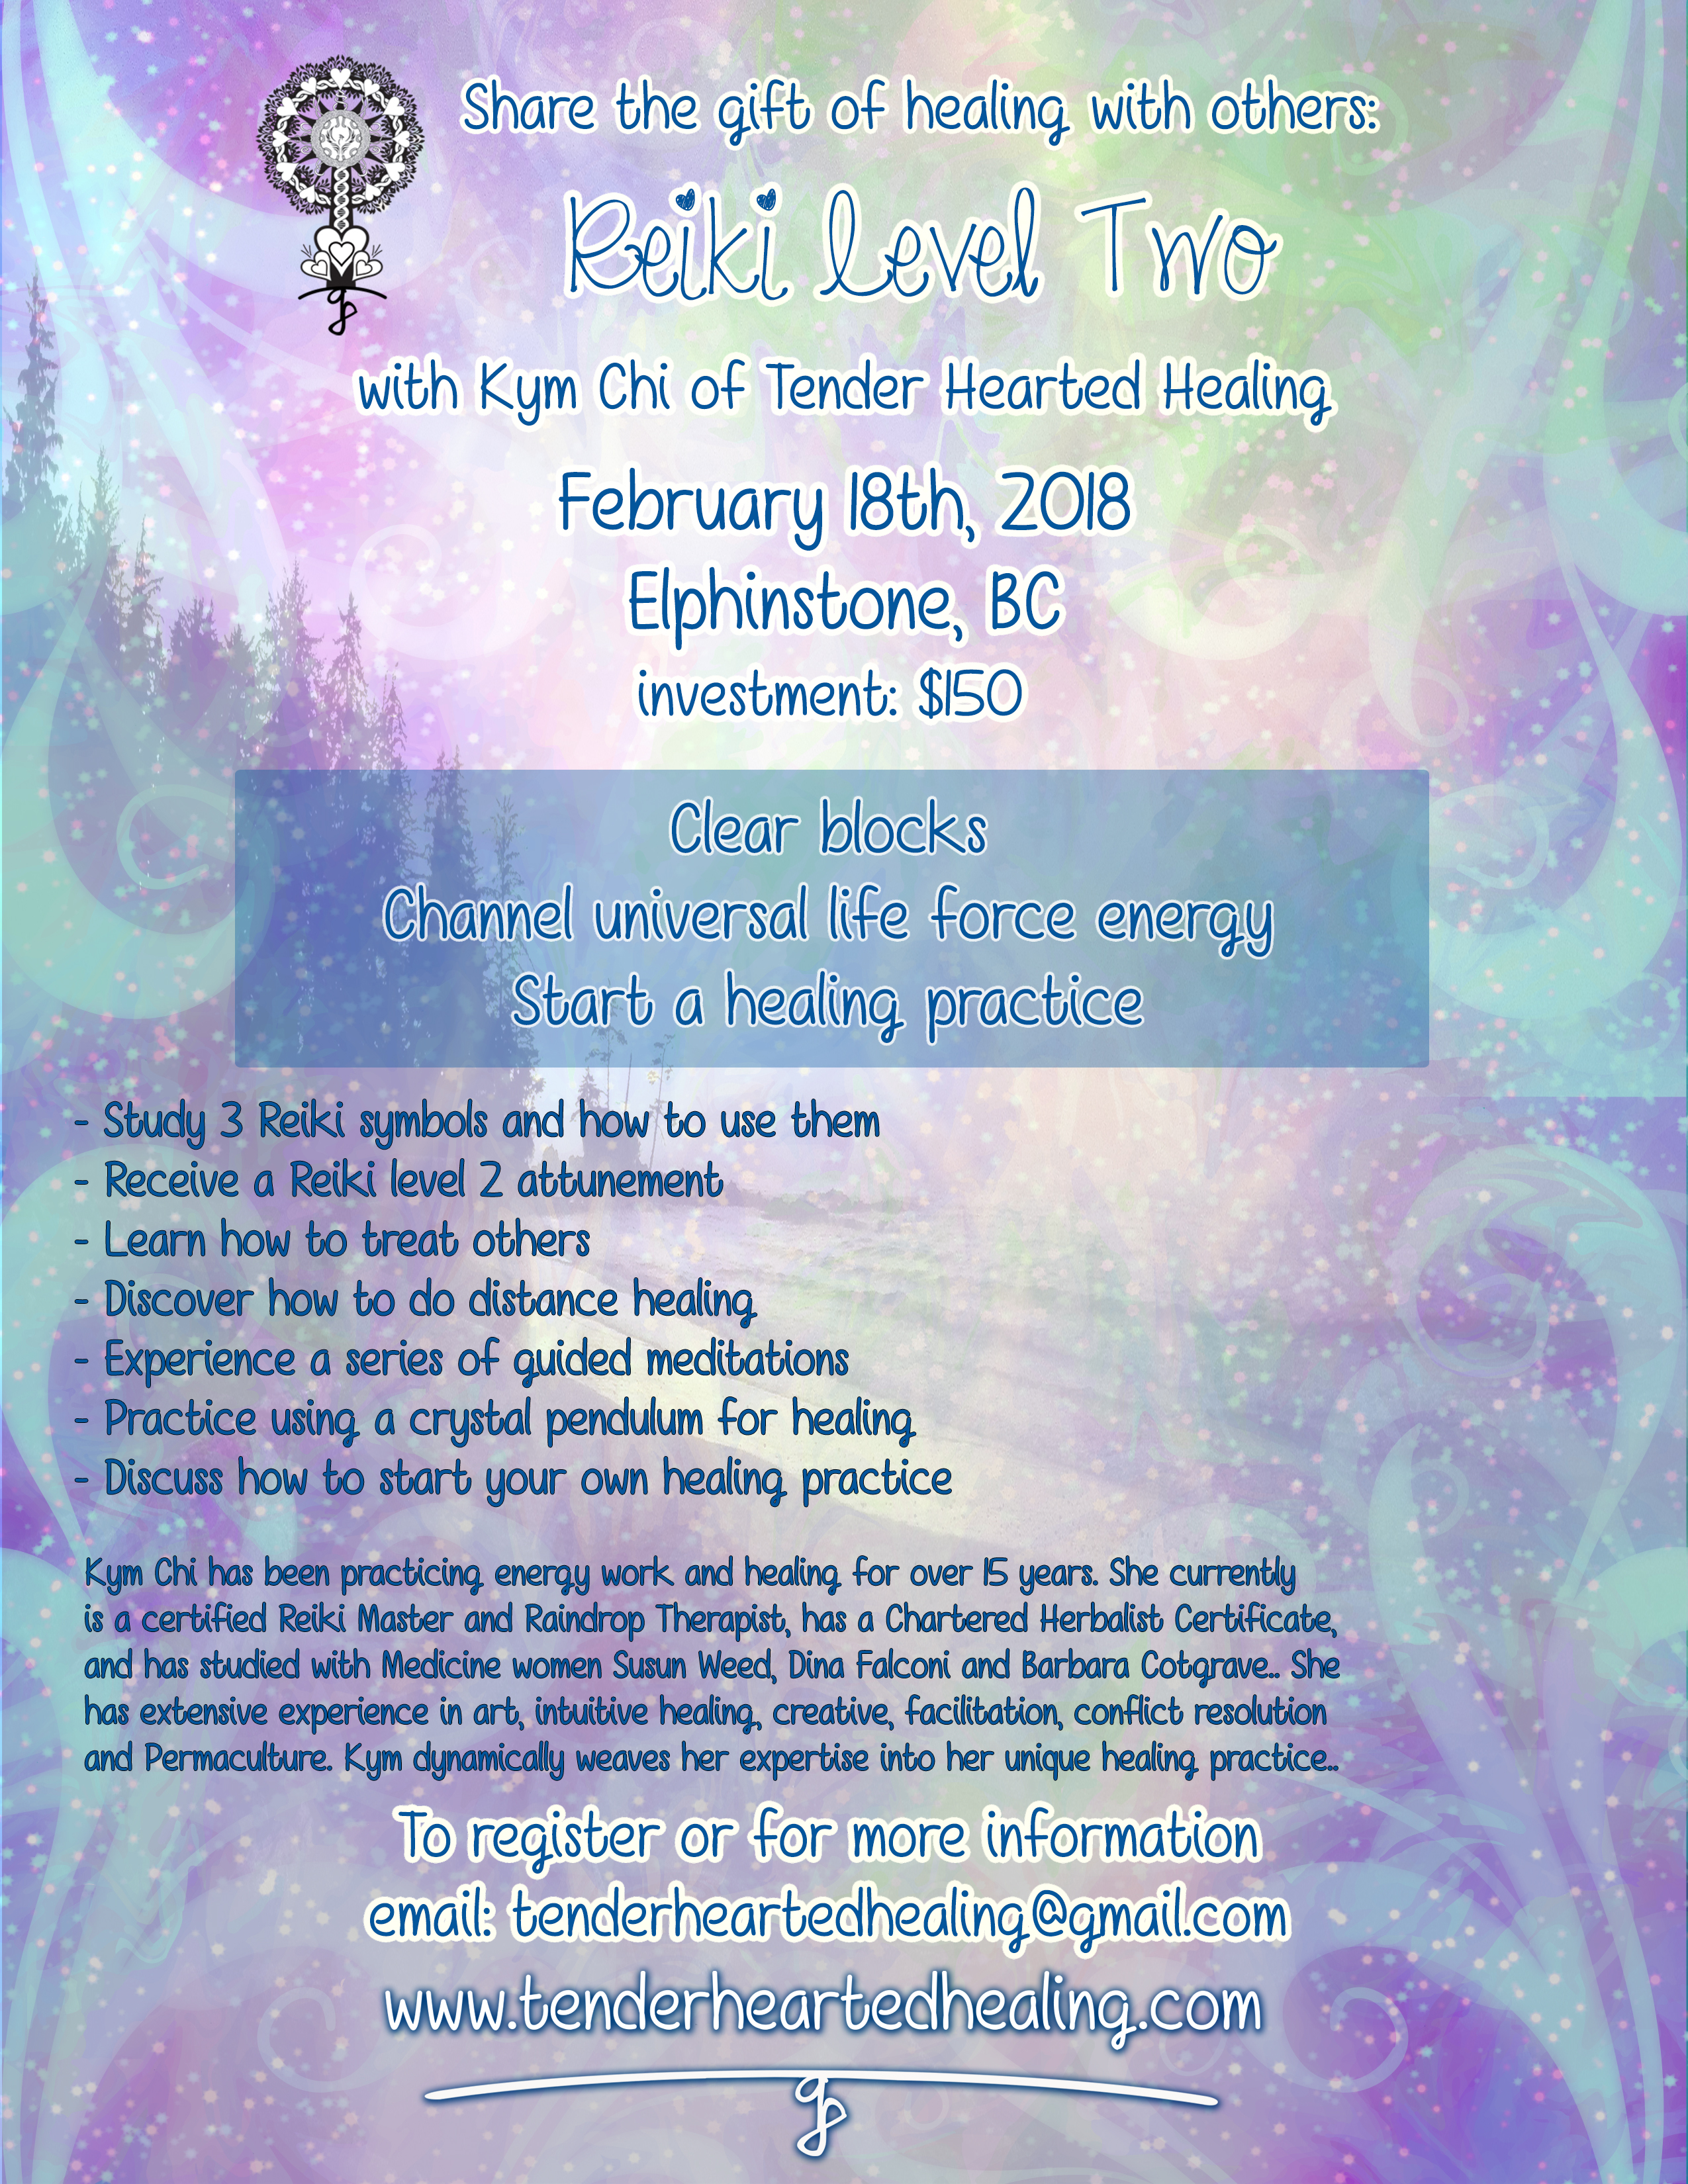 Reiki level 2 join tender hearted healing in sharing the gift of healing with others reiki level 2 biocorpaavc